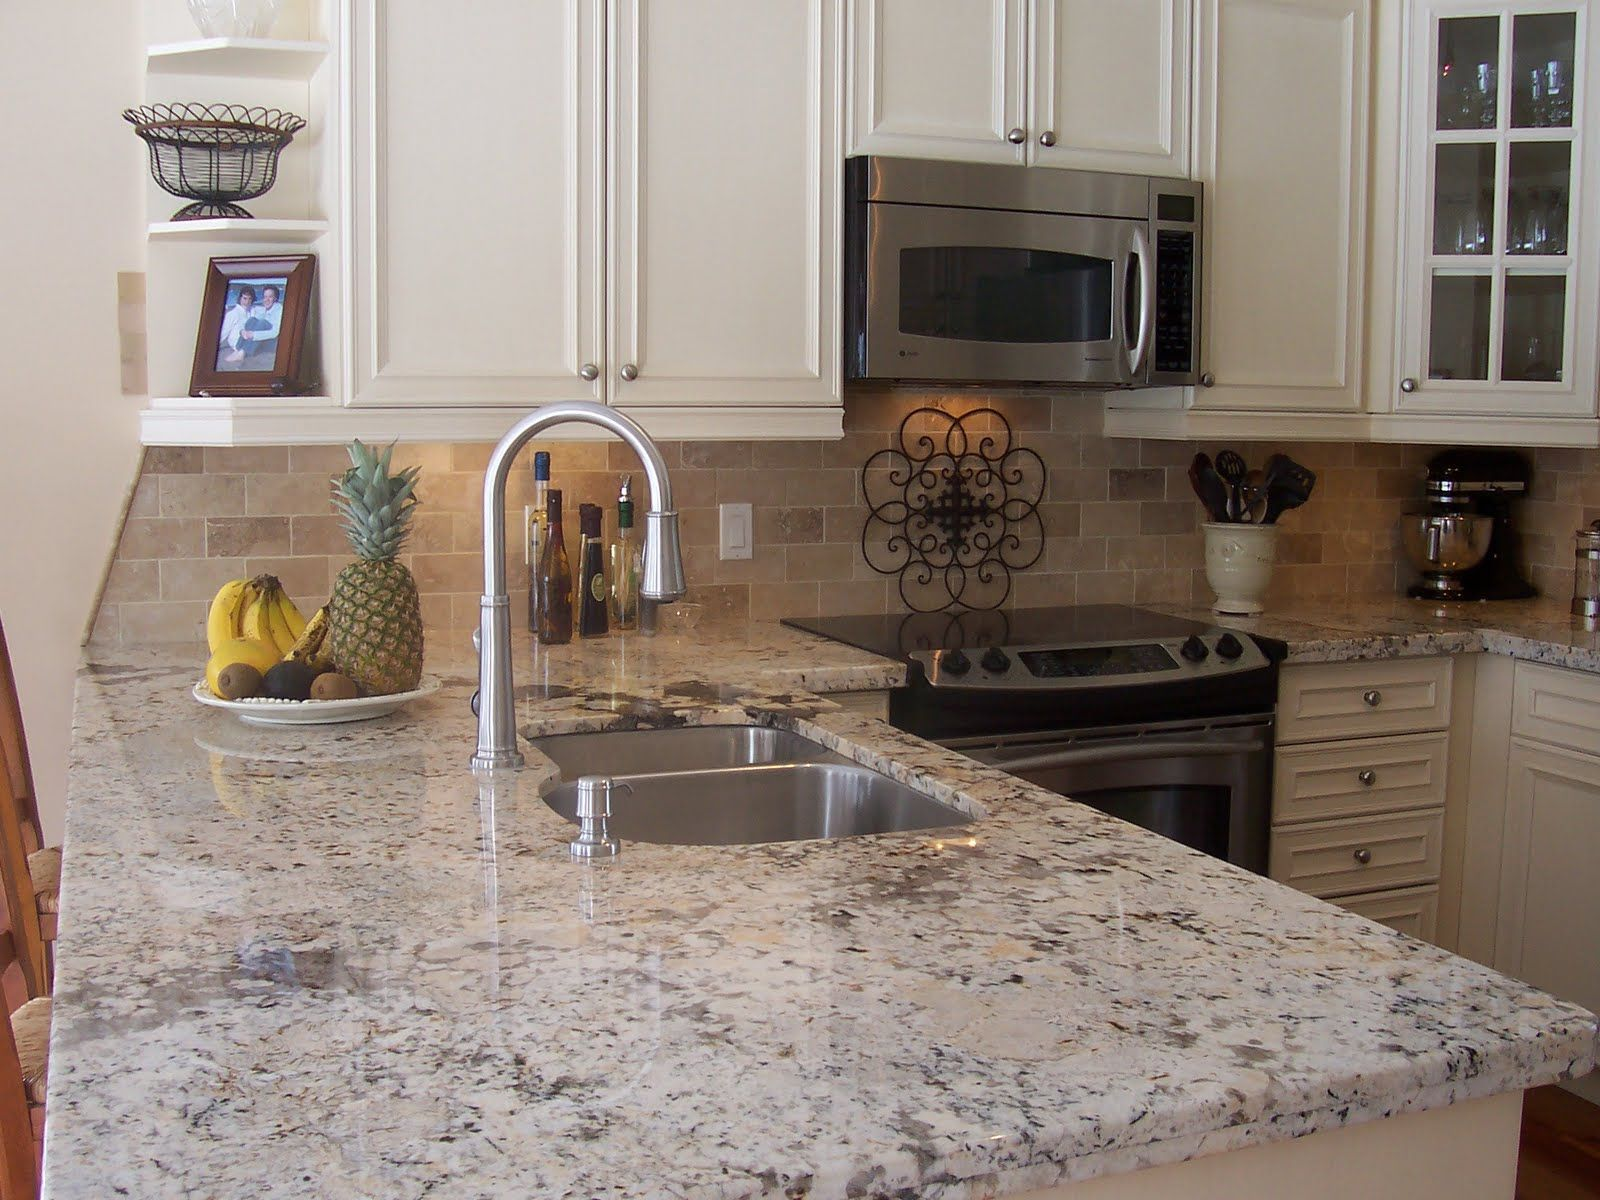 Images Of Granite Countertops In Kitchen Crema Pearl Granite Countertops Kitchen Pinterest